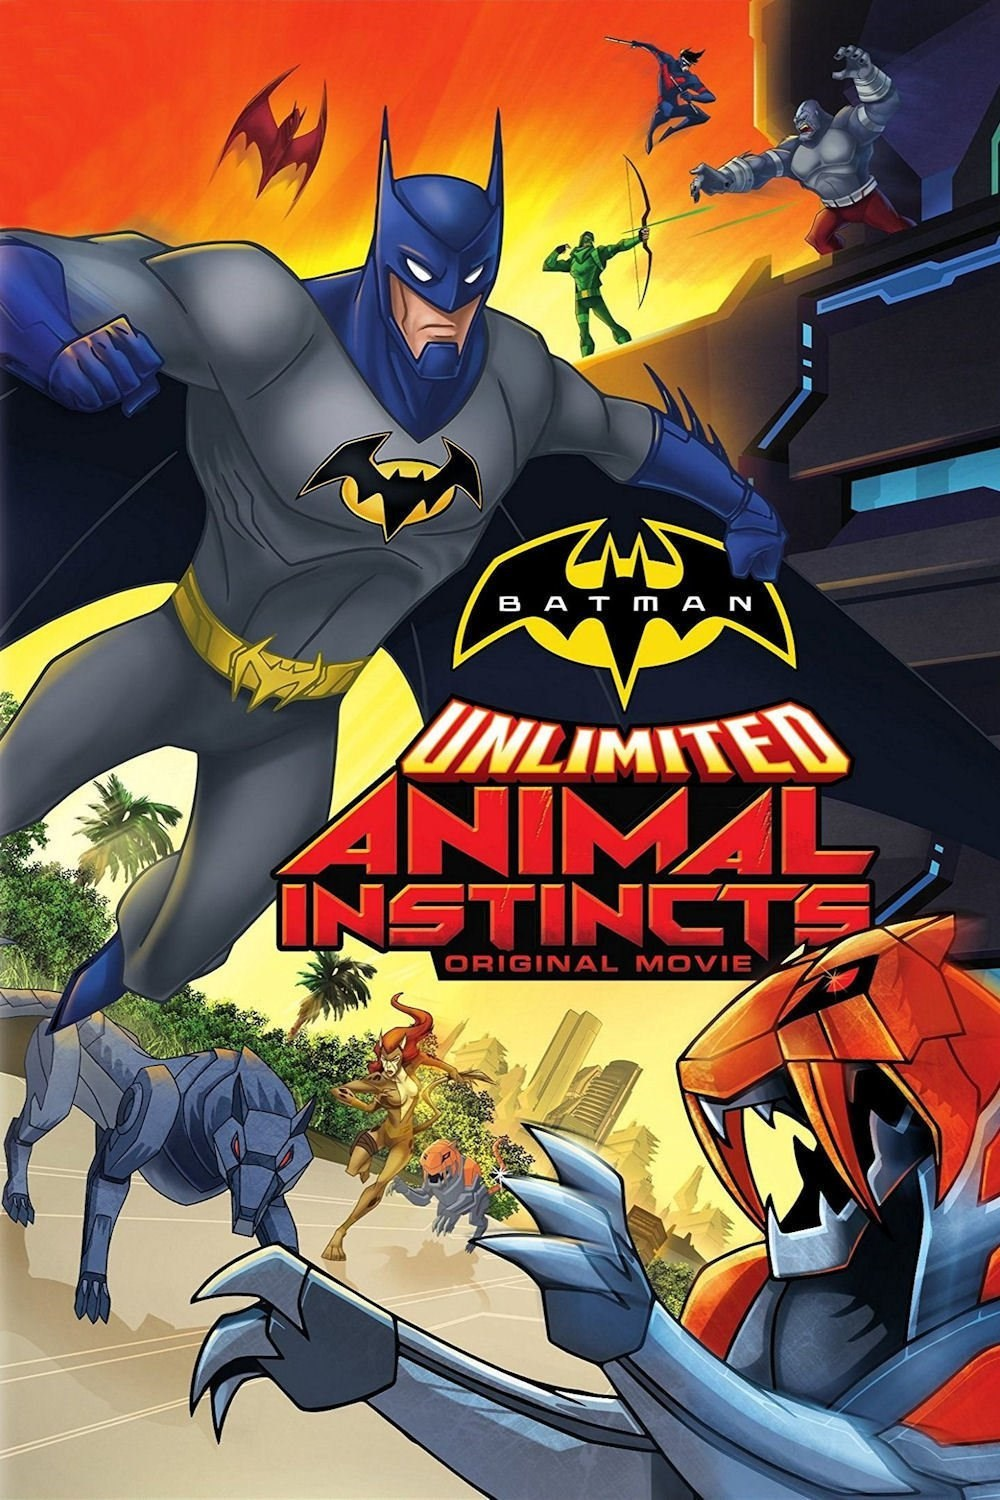 batman-unlimited-animal-instincts.35618.jpg